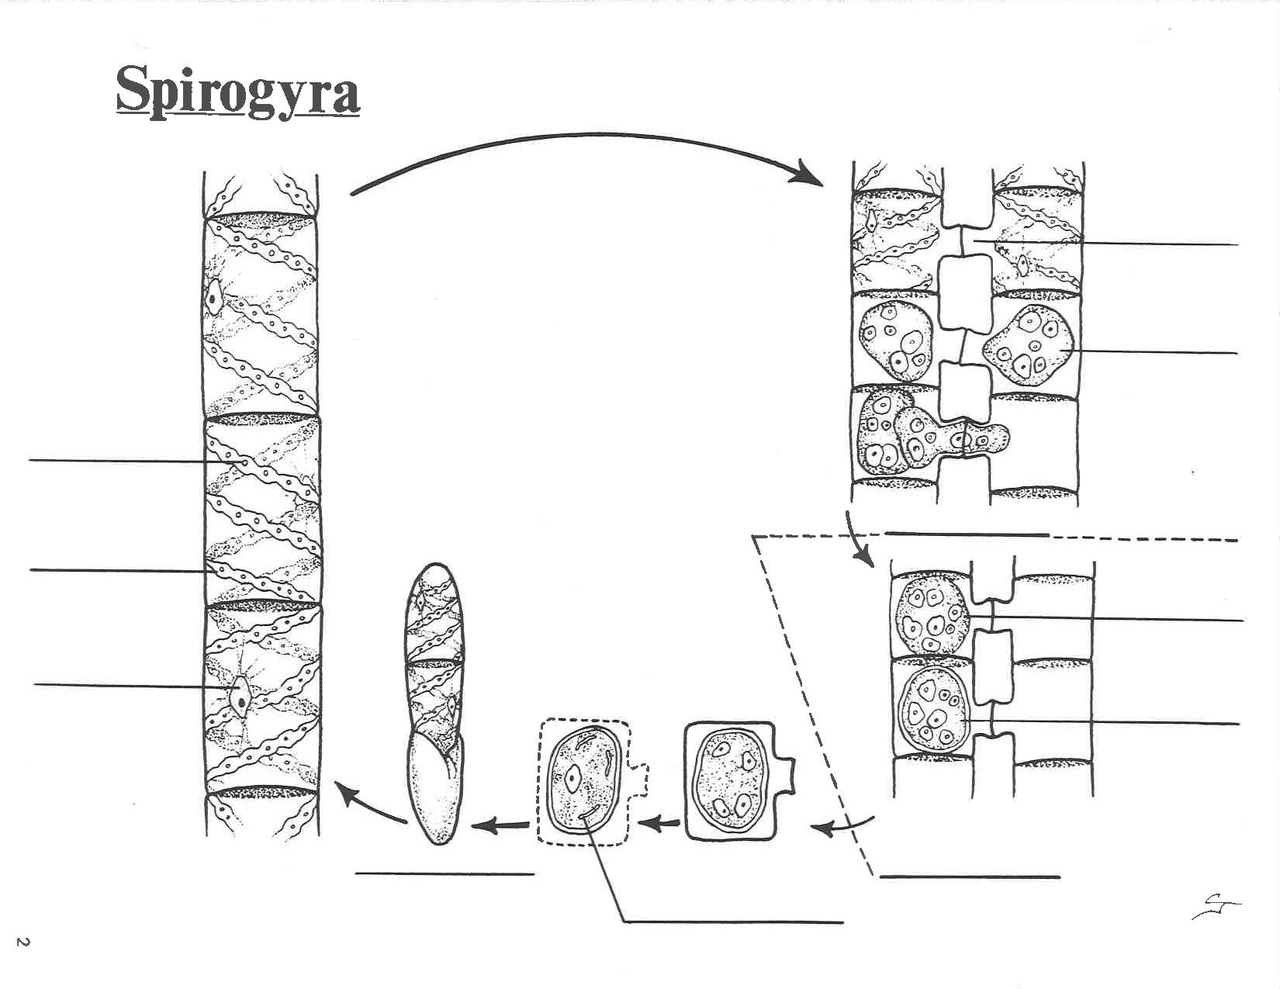 Free Worksheets cell growth and reproduction worksheet : File:Spirogyra life cycle.pdf - Wikimedia Commons